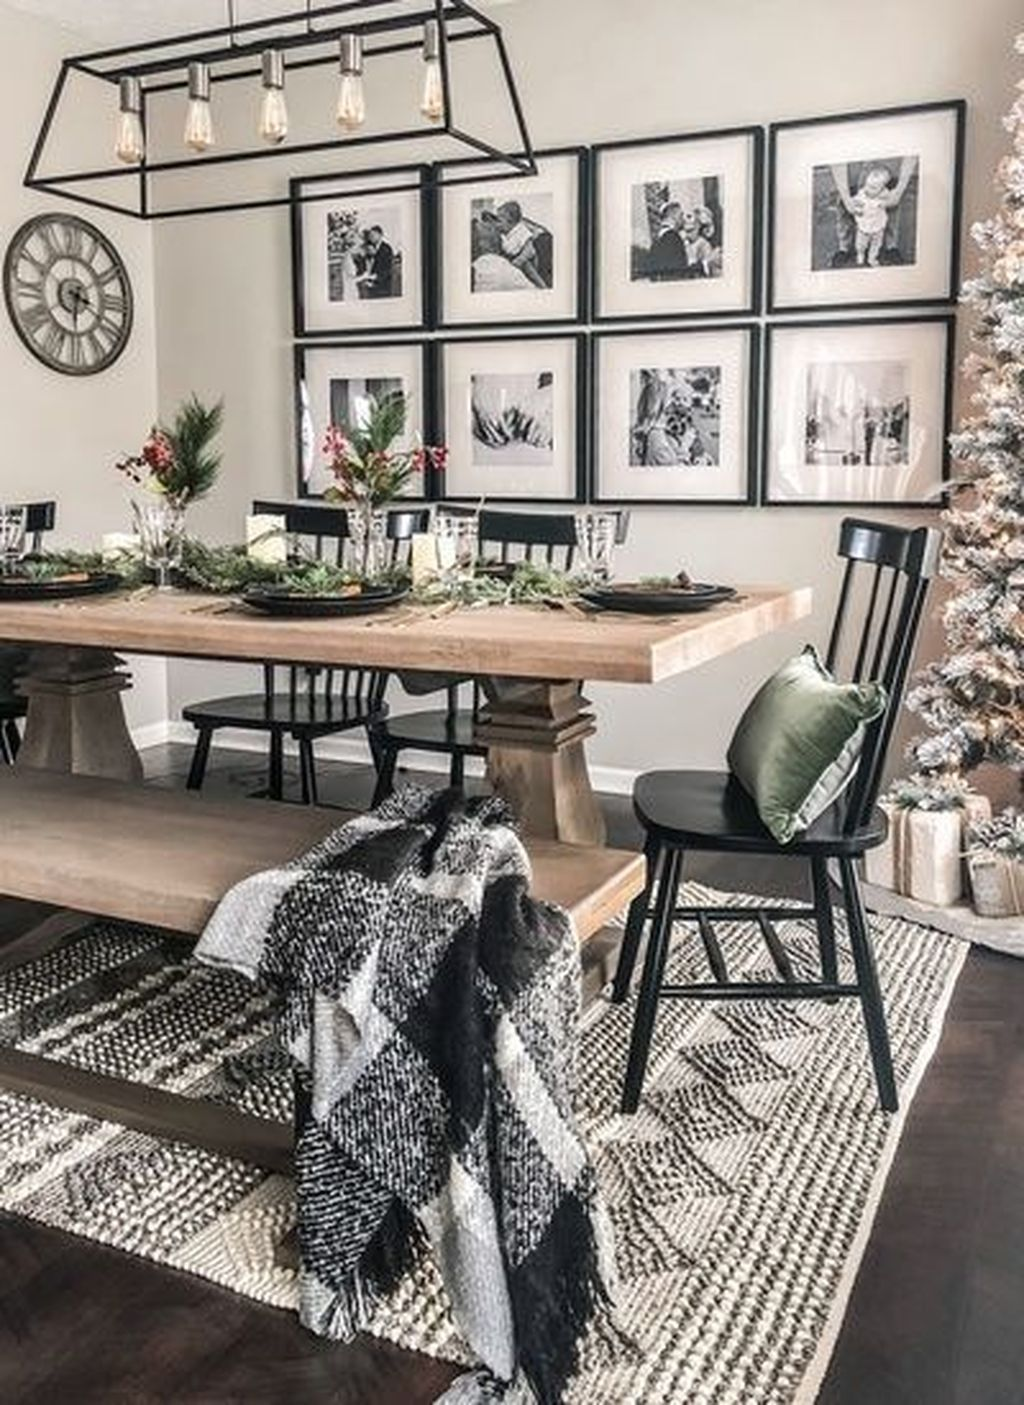 The Best Ideas To Decorate Interior Design With Farmhouse Style 21